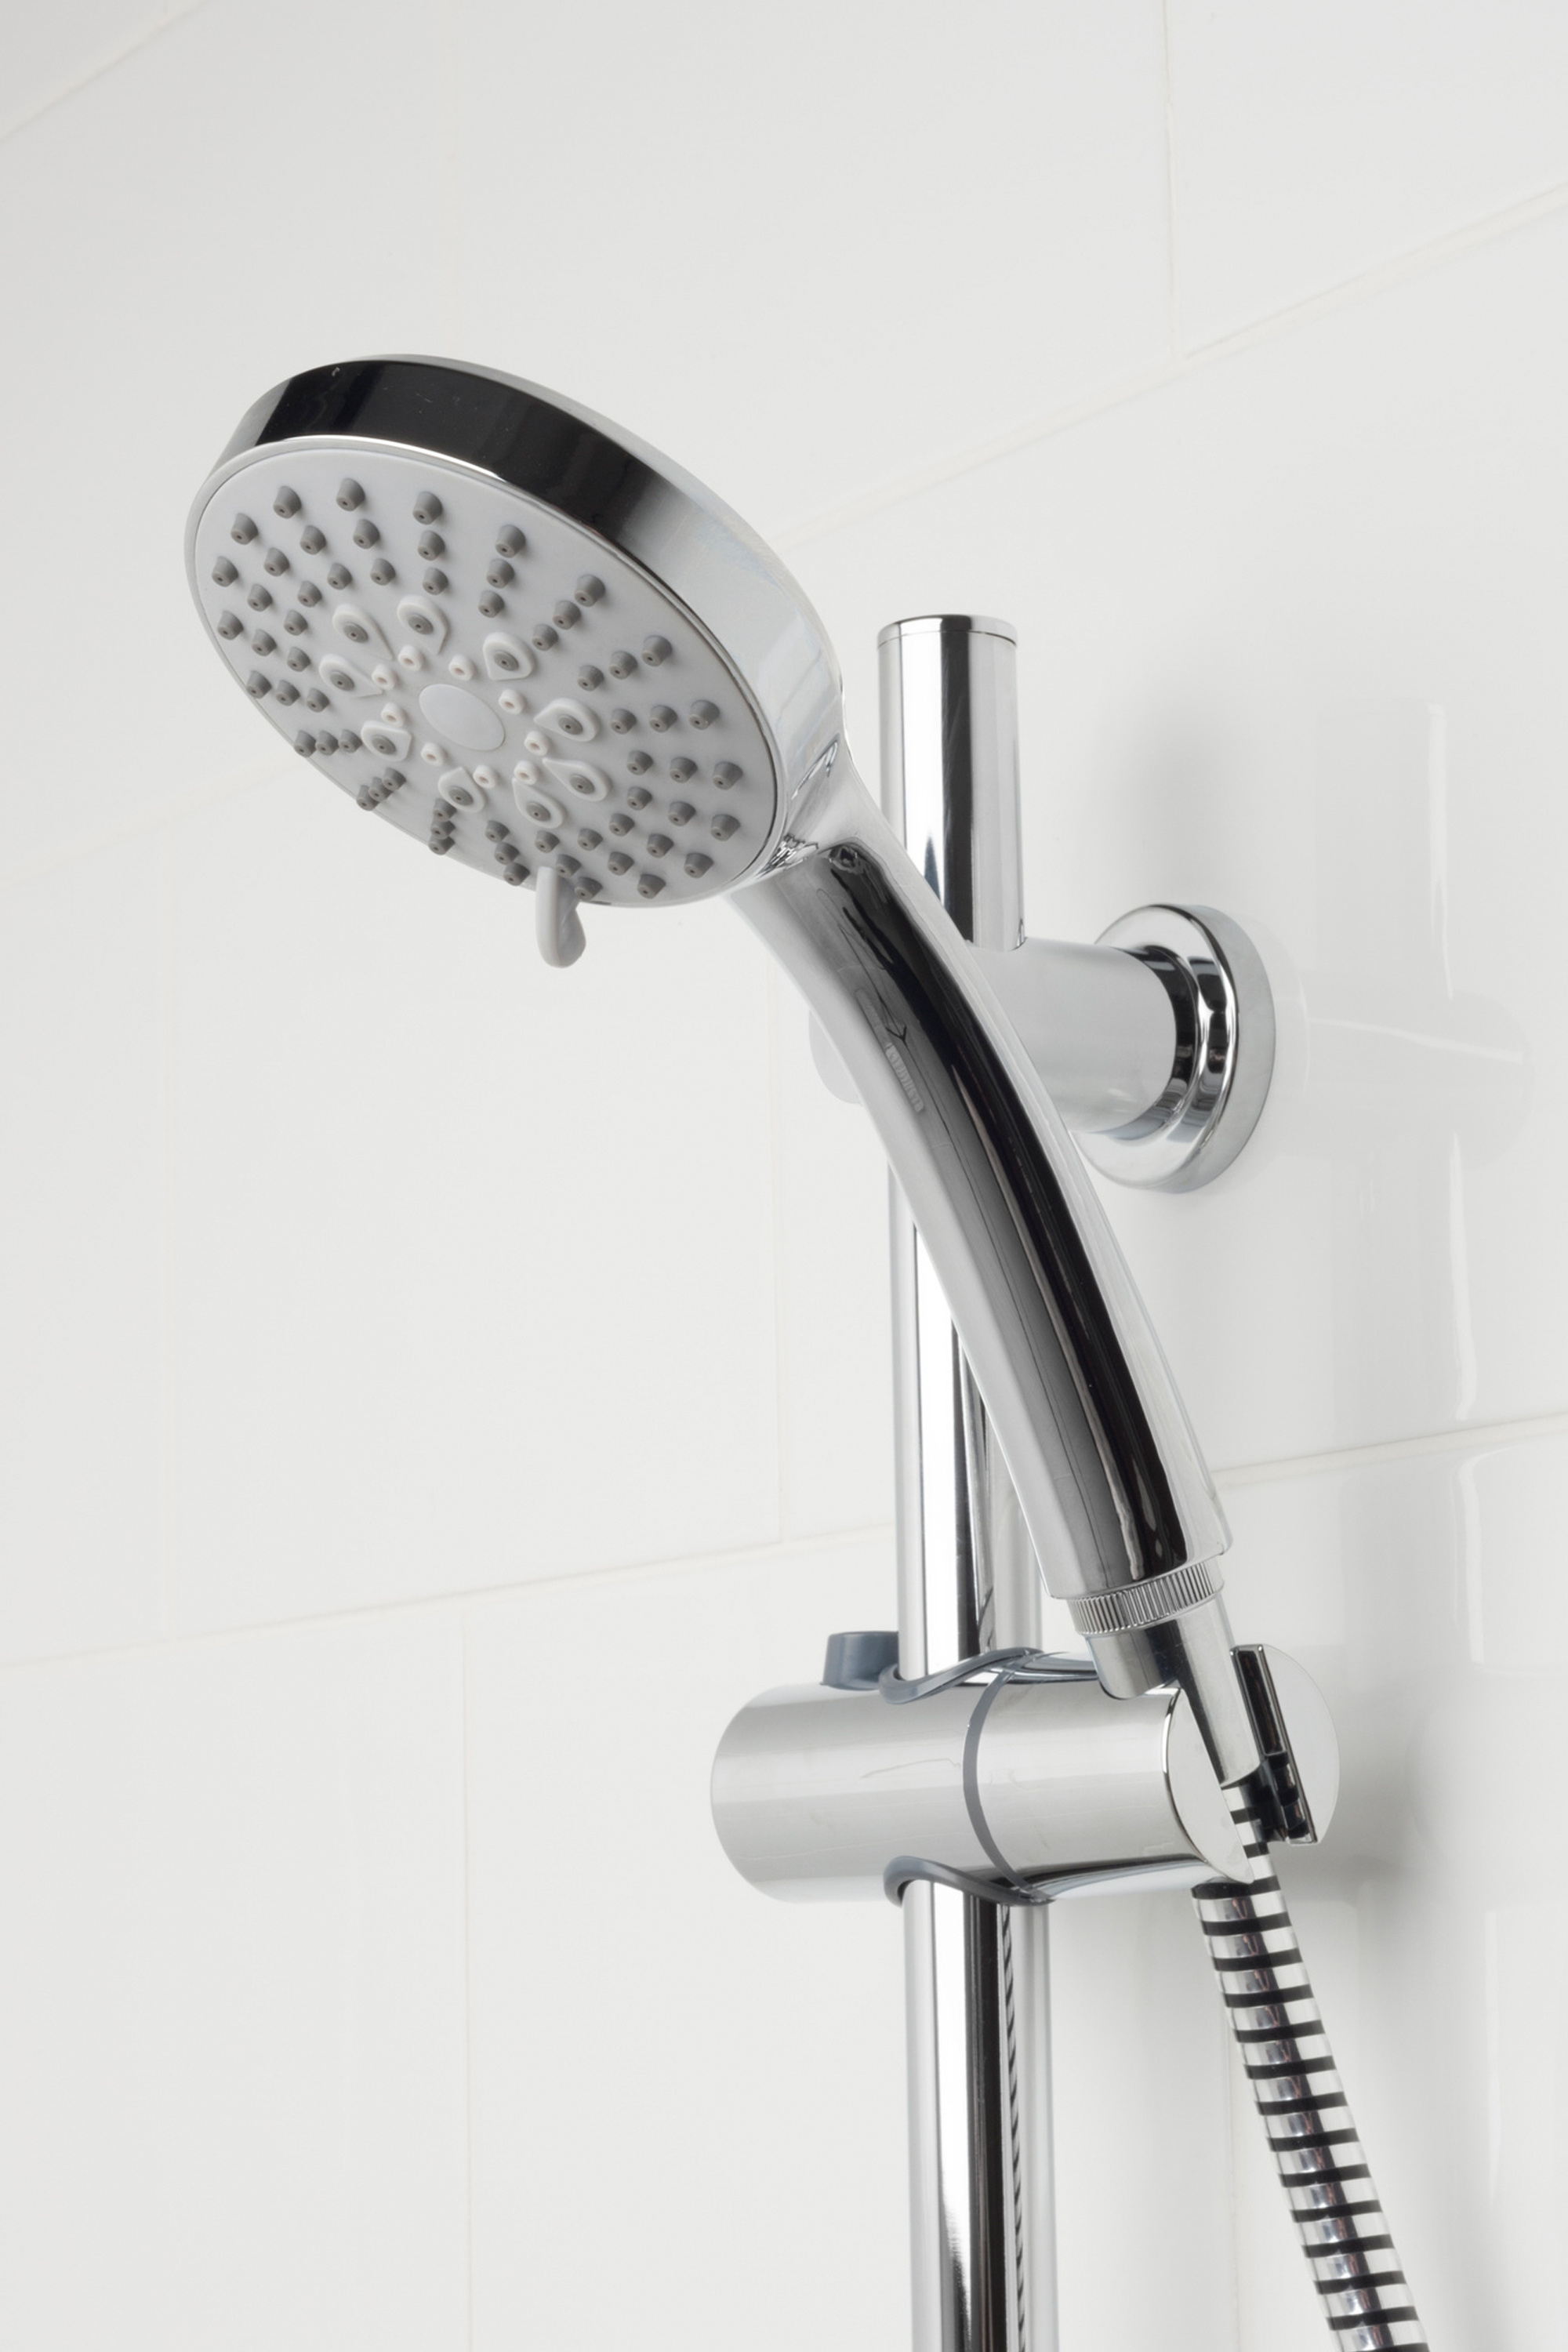 Beldray 5 Function Replacement Shower Head, Chrome | Beldray